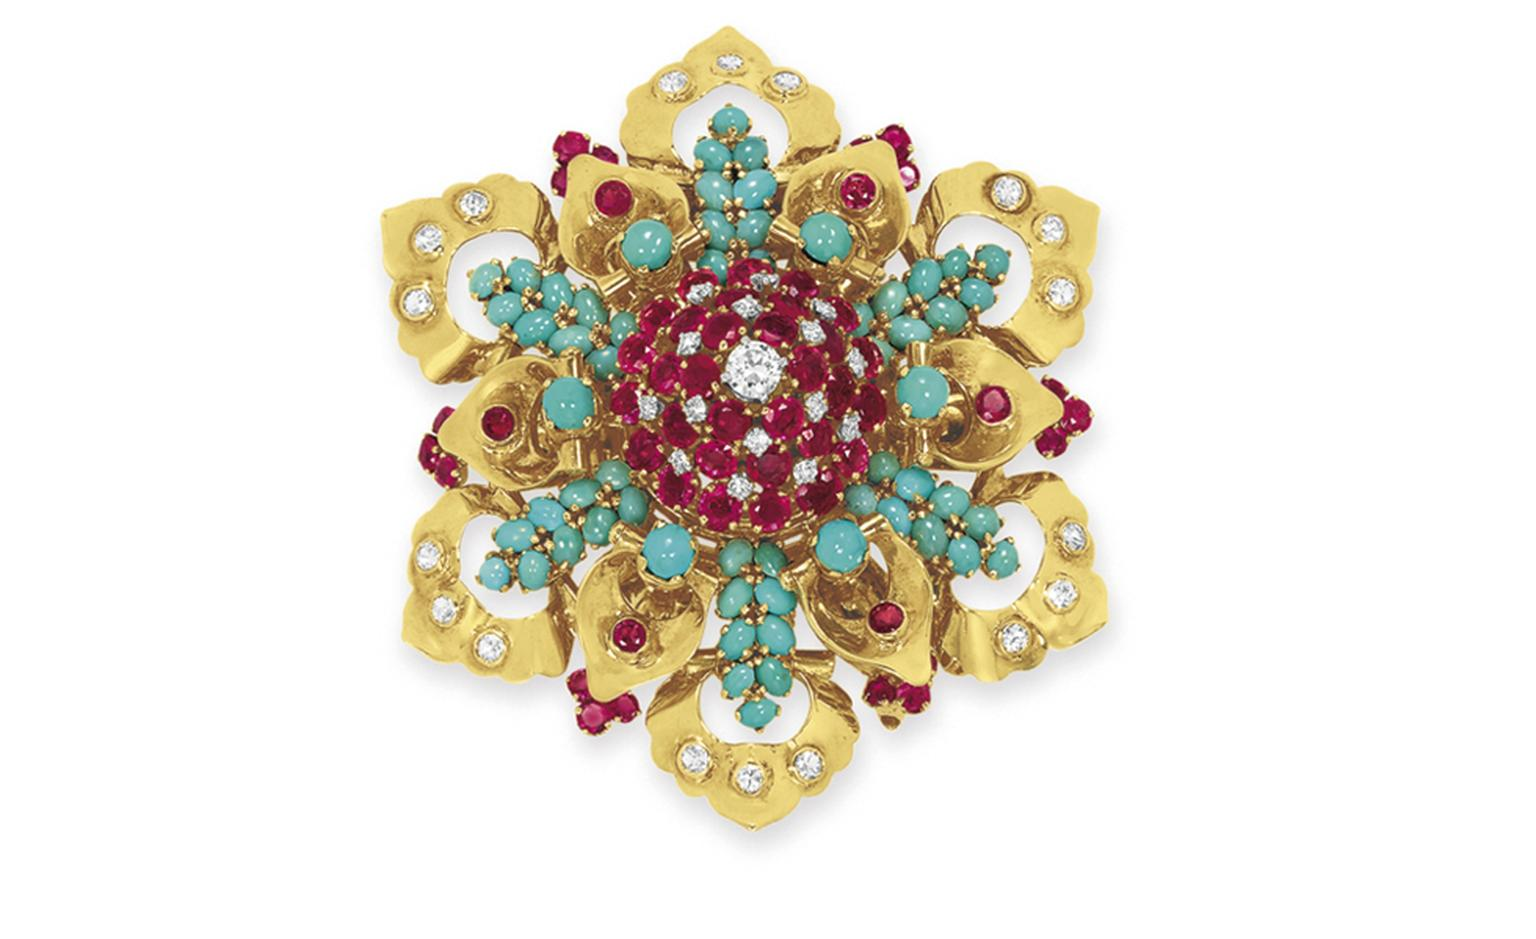 Lot 10. A diamond, ruby, turquoise and gold brooch, by John Rubel Co. Estimate 3,000 - 5,000 U.S. dollars